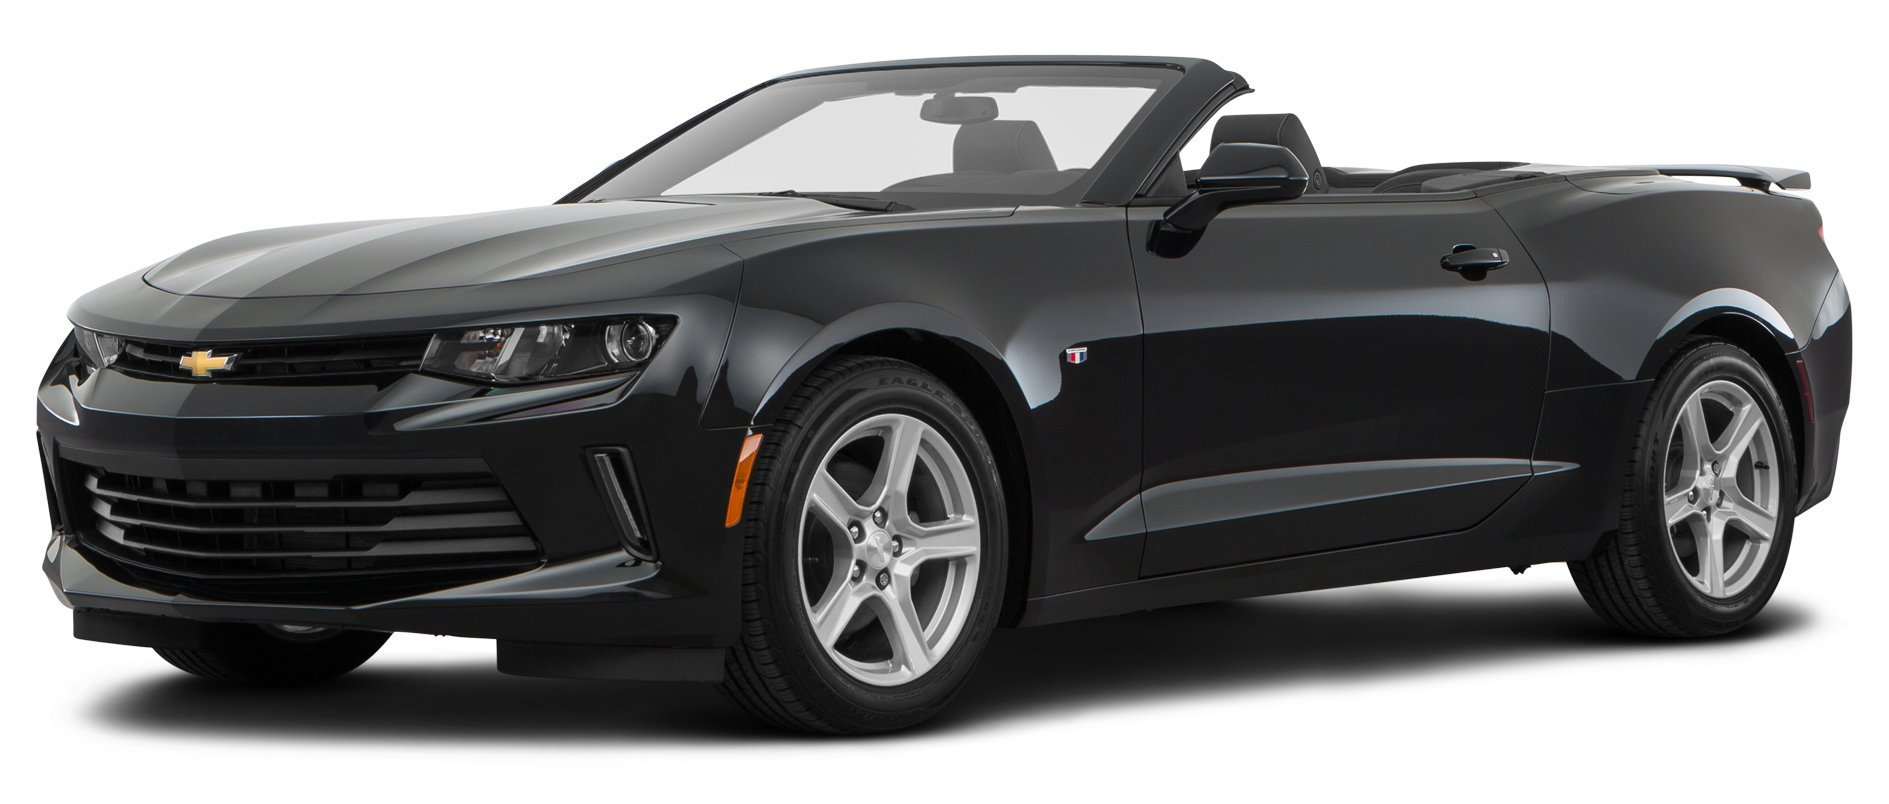 Amazon.com: 2016 Chevrolet Camaro Reviews, Images, and ...